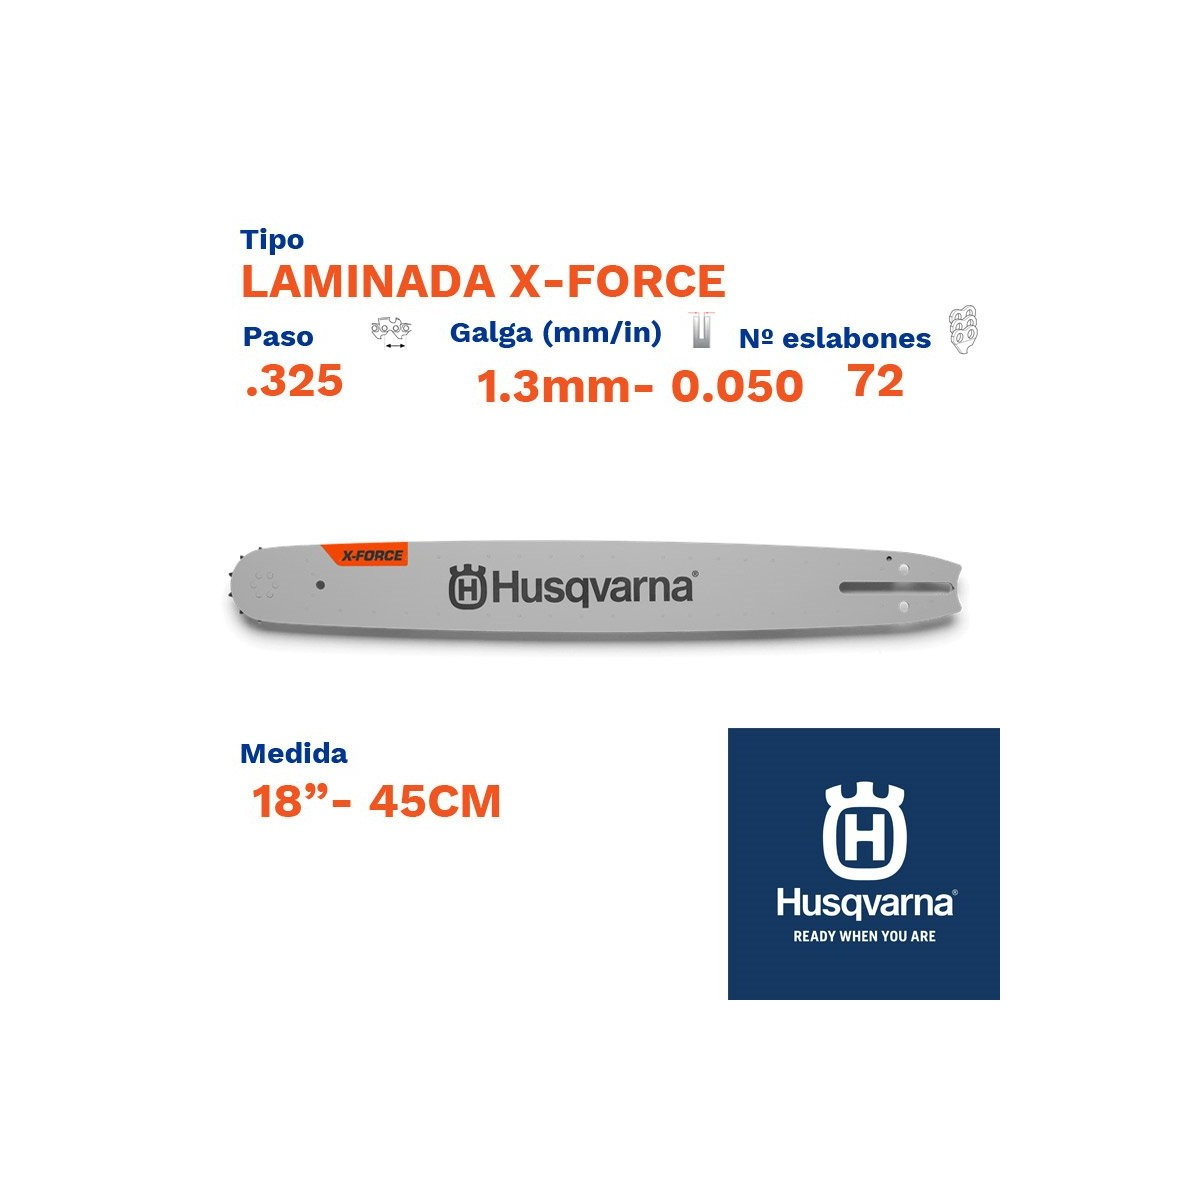 "Husqvarna espada laminada x-force 1.3mm 72 eslabones-pc .325  18""- 45cm"